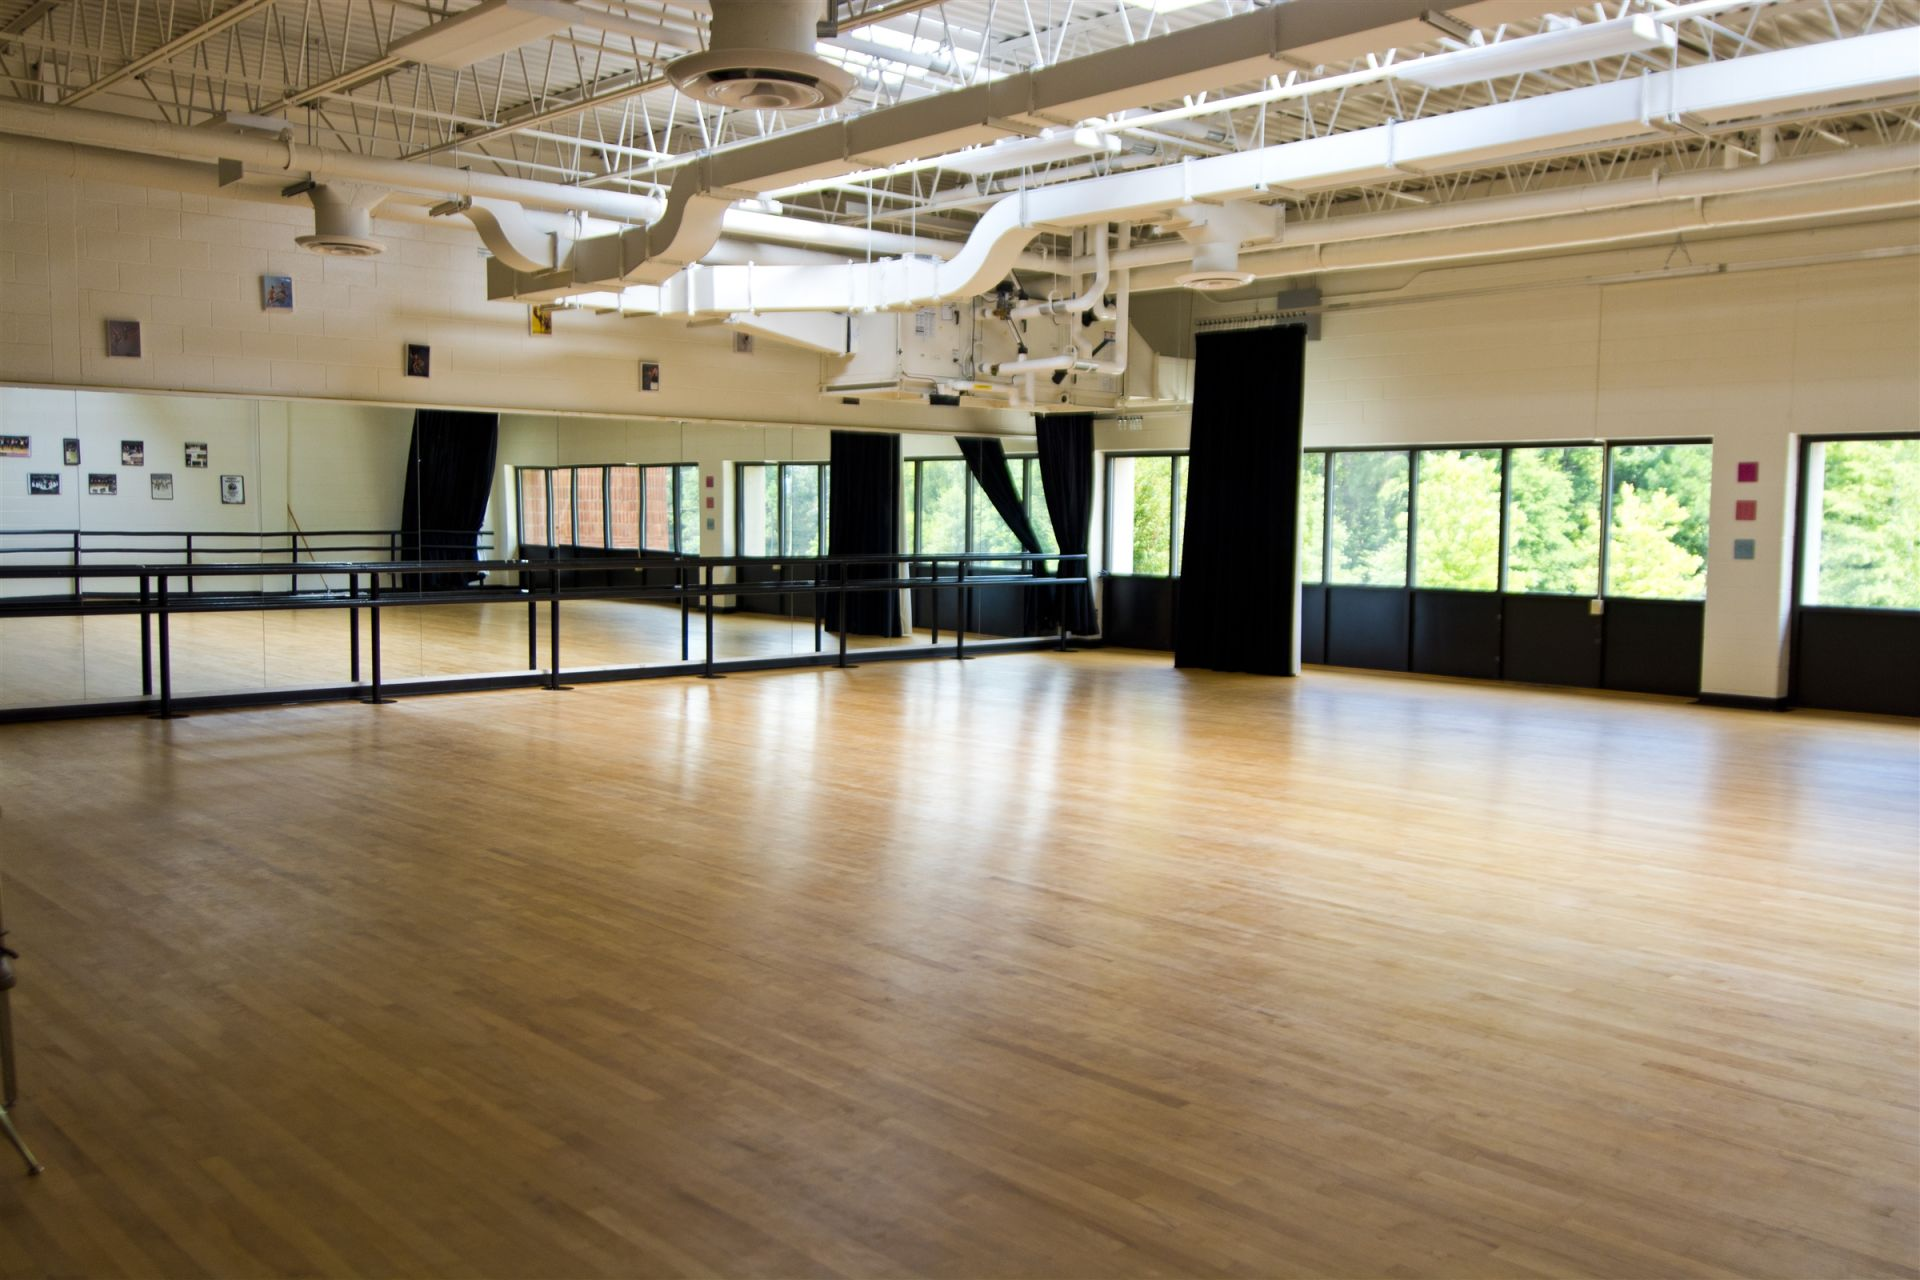 Seal Athletic Center Dance Studio, Mooreland Campus